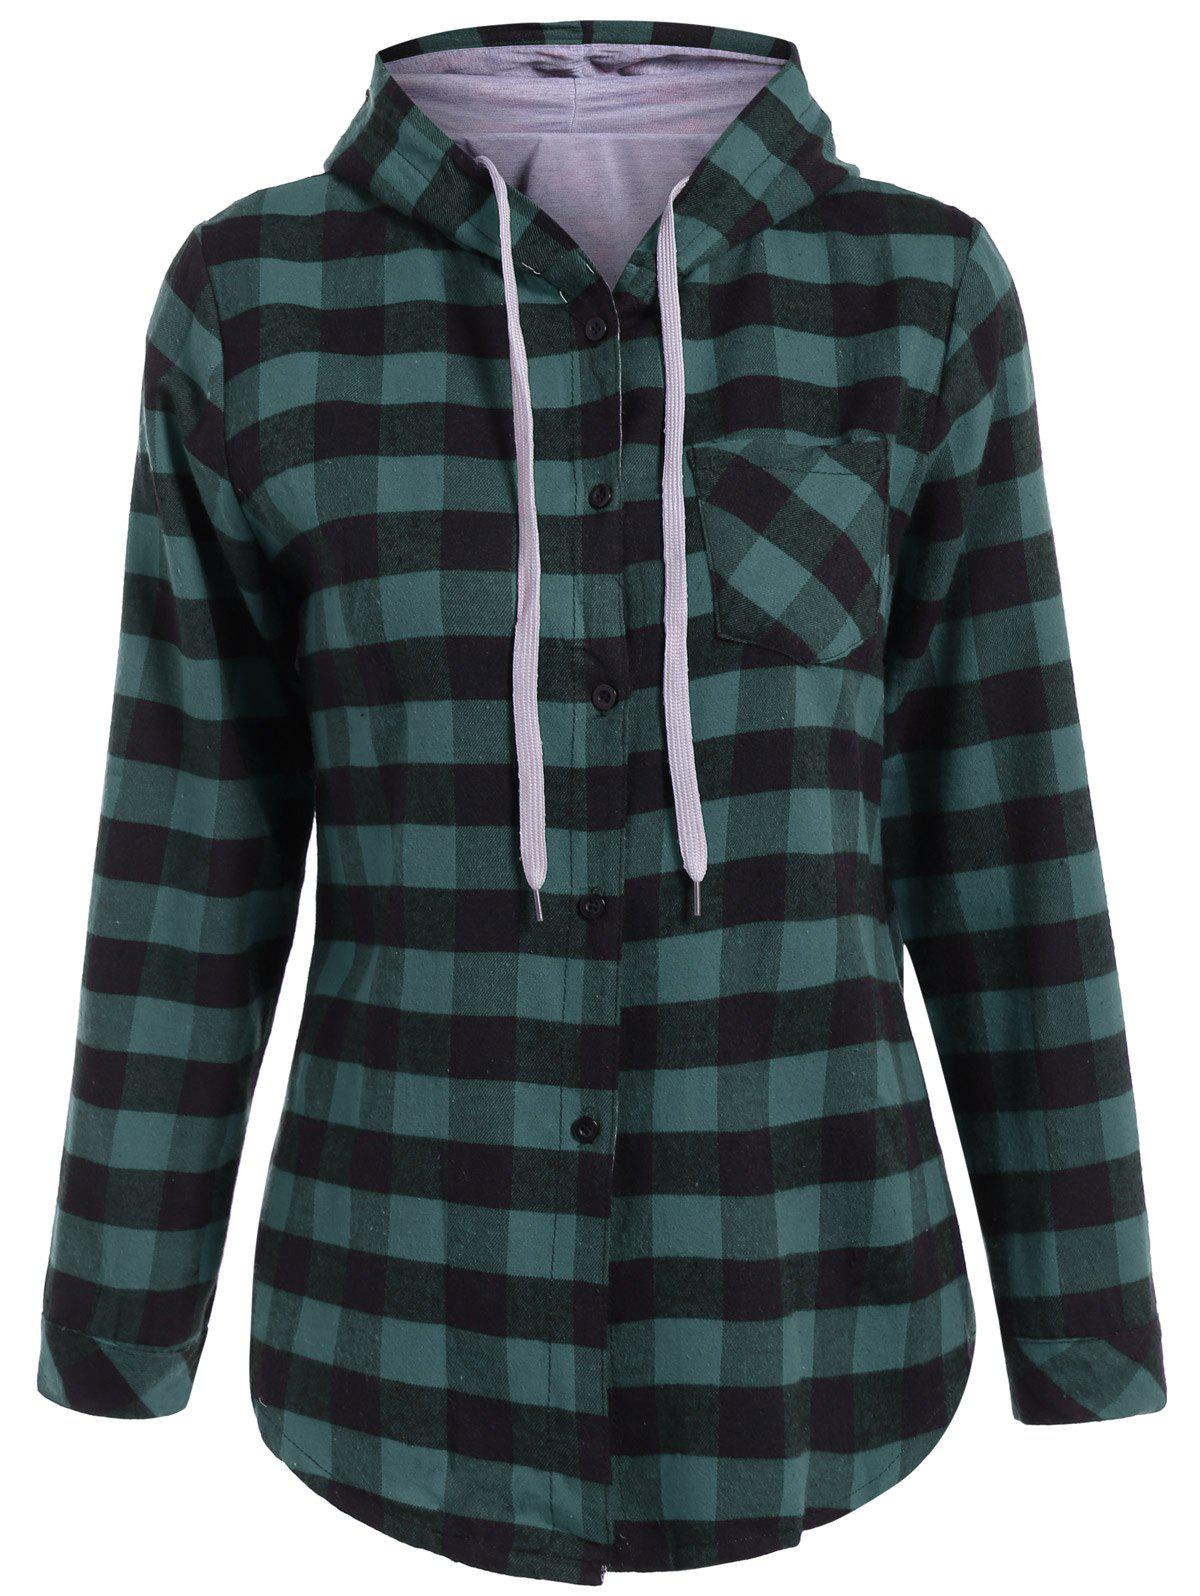 Long Sleeve Hooded Plaid Shirt от Dresslily.com INT